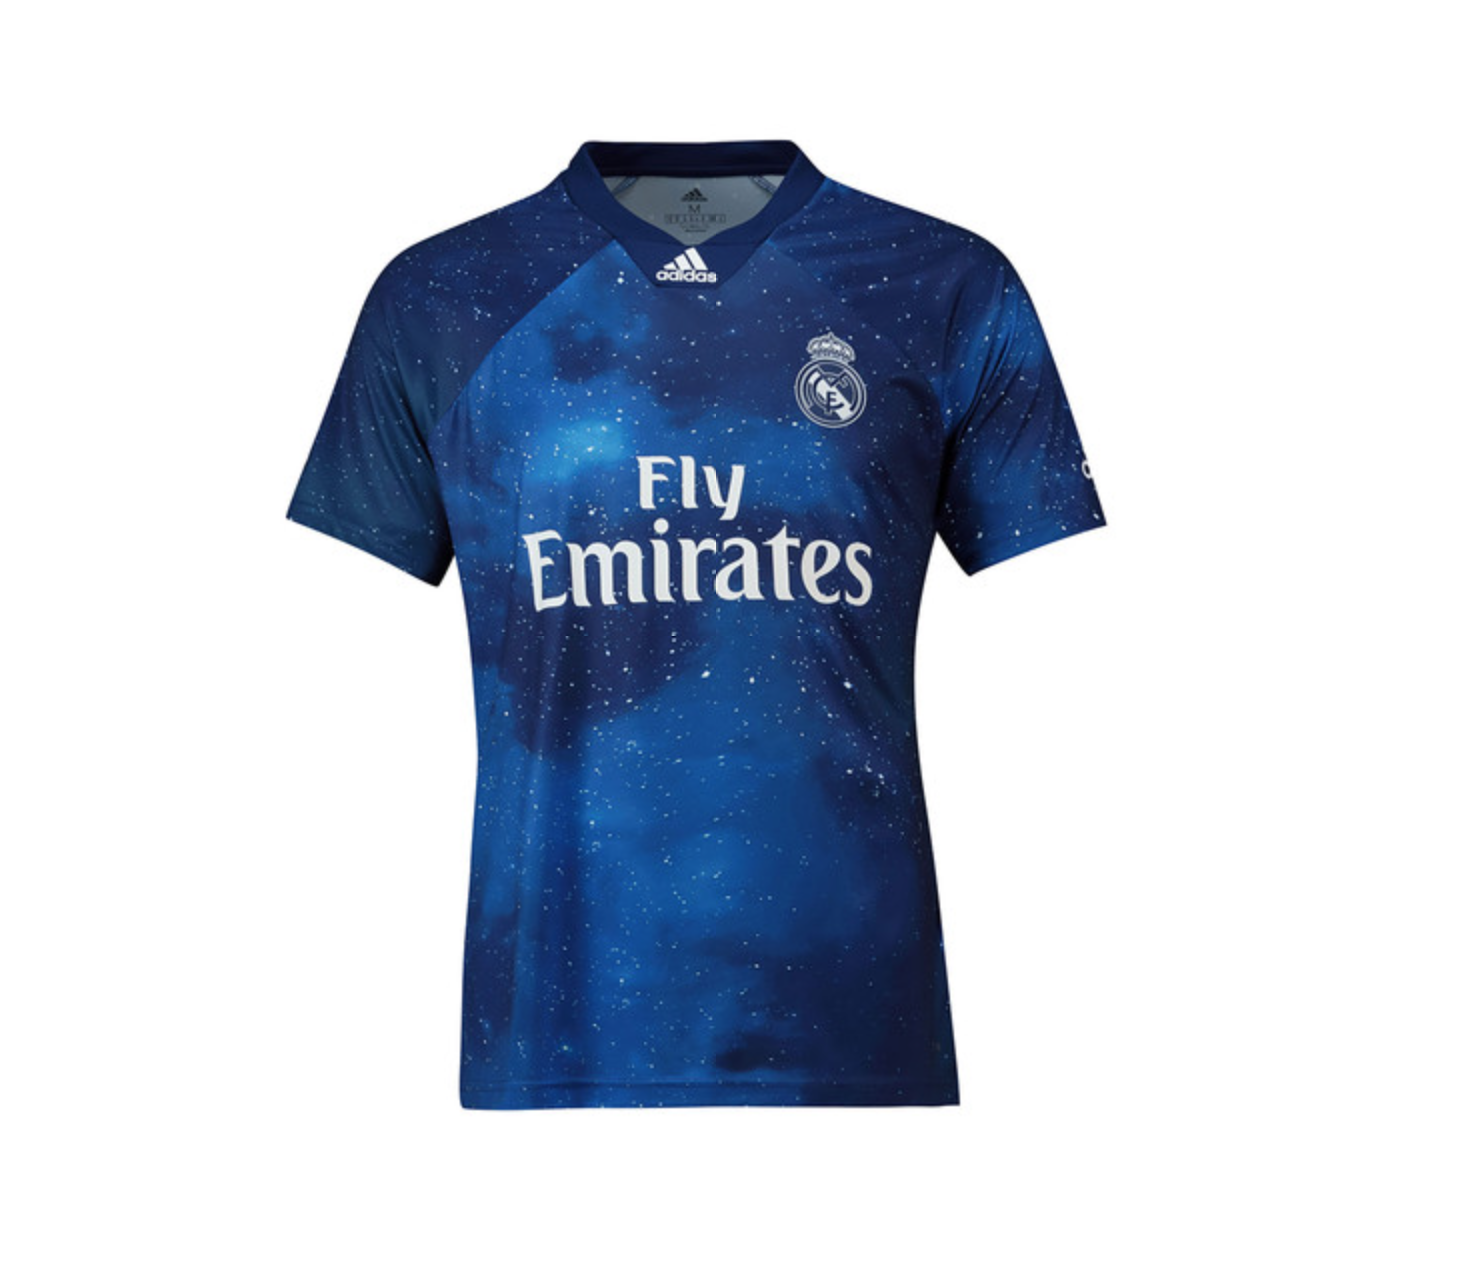 Real Madrid C F Football Club 4th Kit Ea Sports X Adidas Limited Edit Www Worldsoccerfootballshop Com